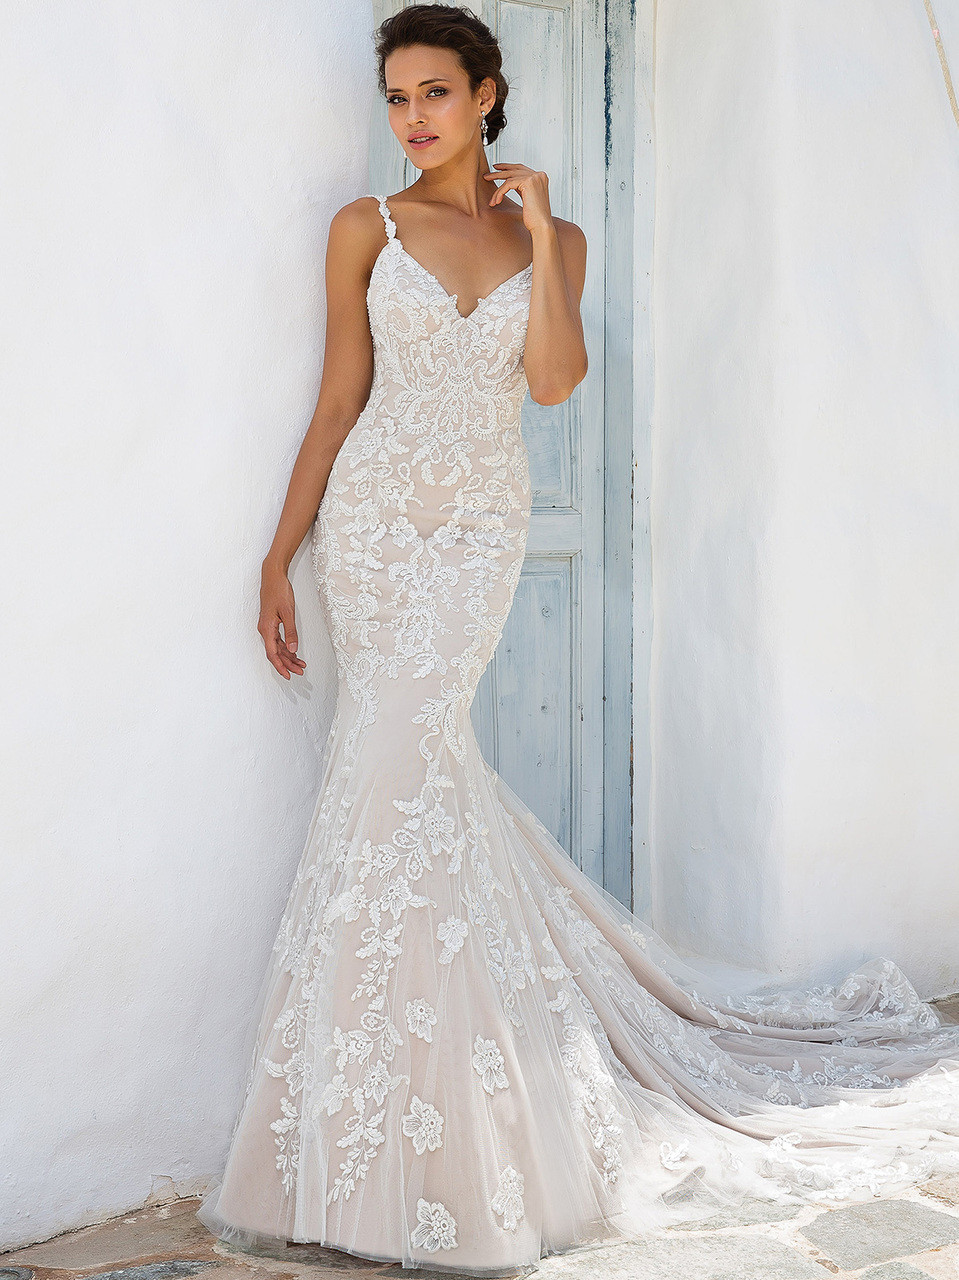 807808e485c2 Justin Alexander 8960 Sweetheart Fit And Flare Wedding Dress ...